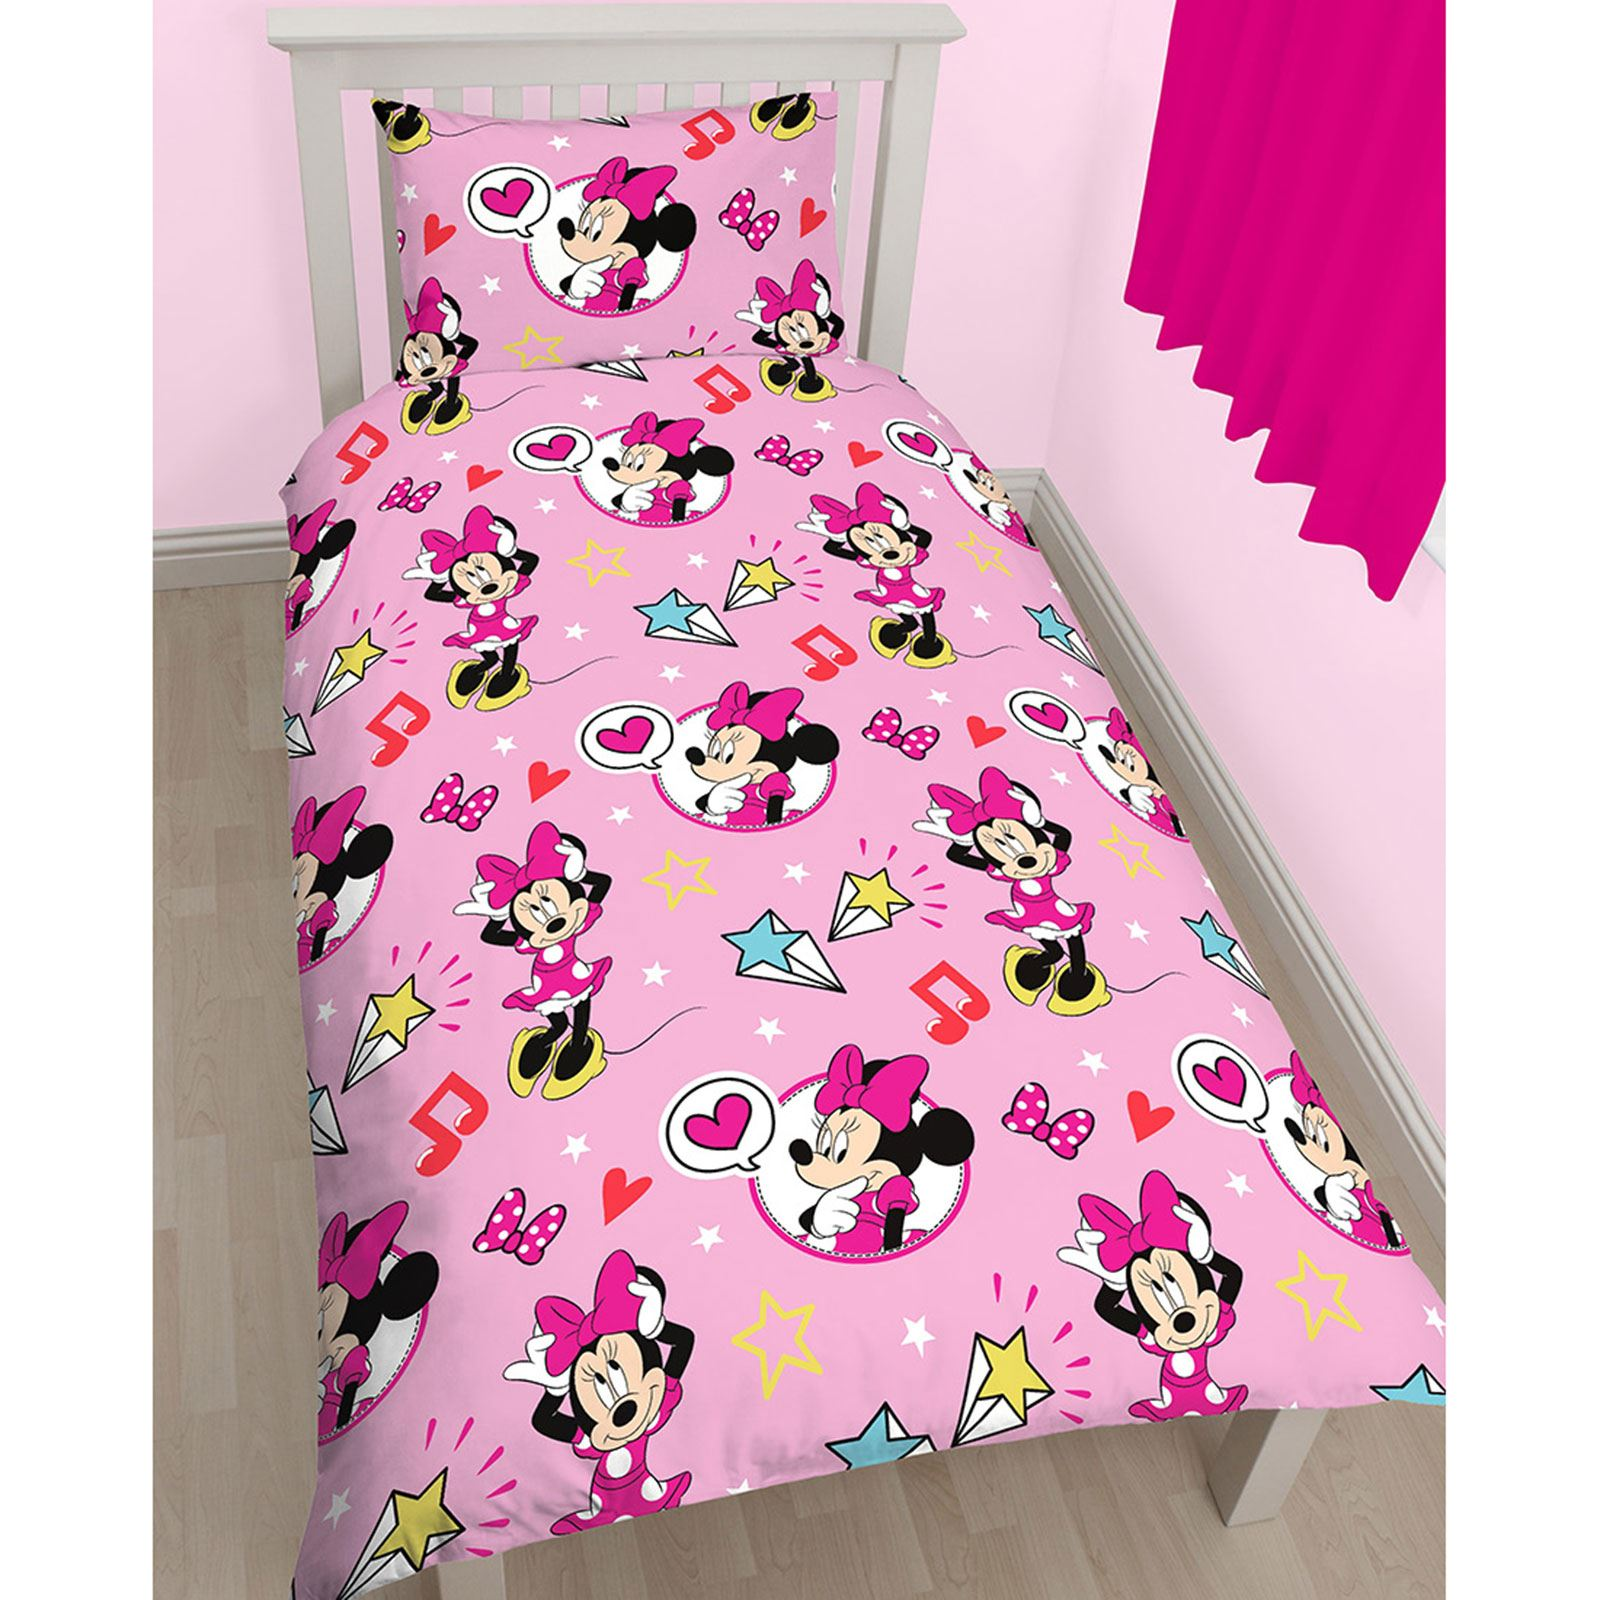 MINNIE-MOUSE-DUVET-COVERS-KIDS-GIRLS-BEDDING-SINGLE-DOUBLE-JUNIOR thumbnail 37